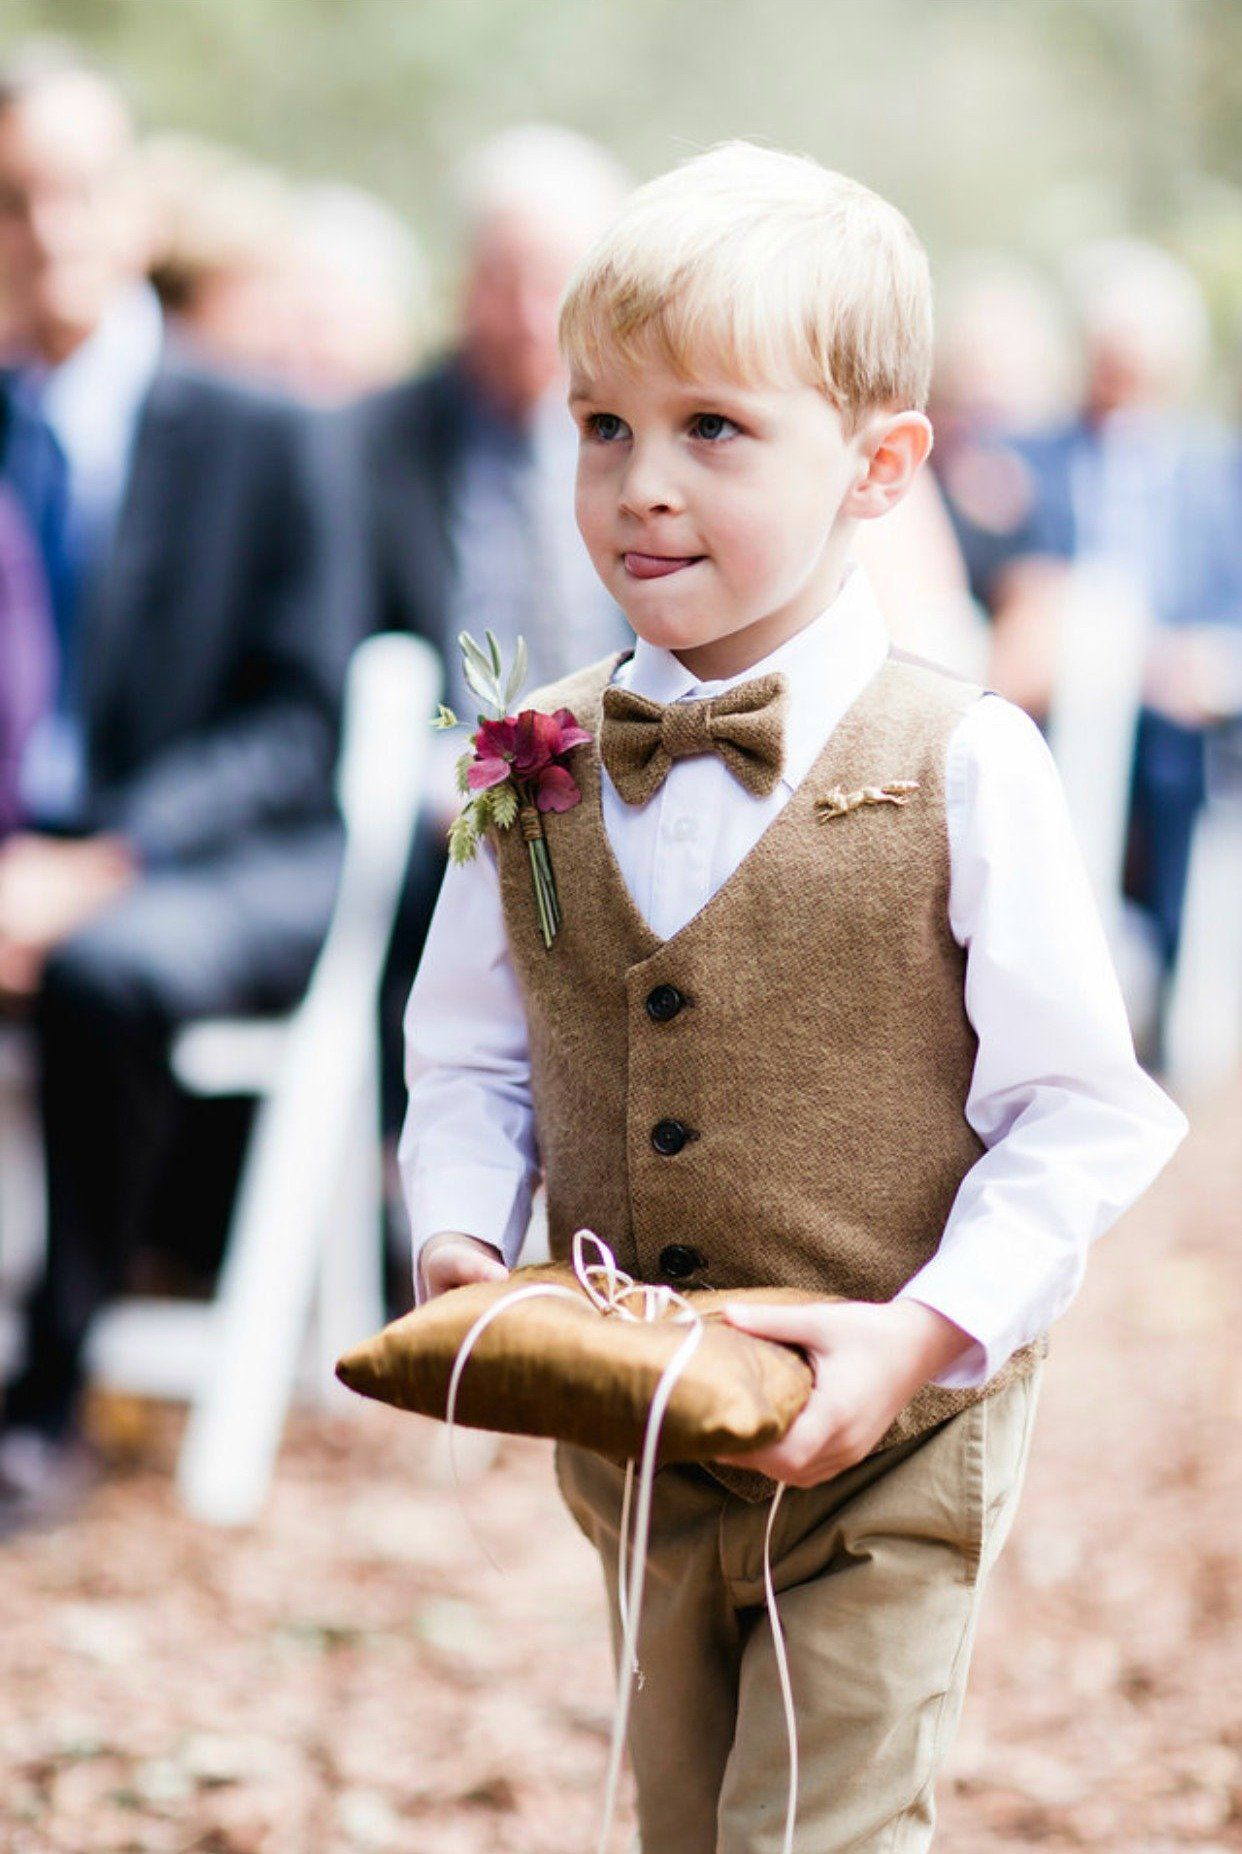 Brown Cotton Tweed Vest in 2019 Ring bearer outfit, Gold